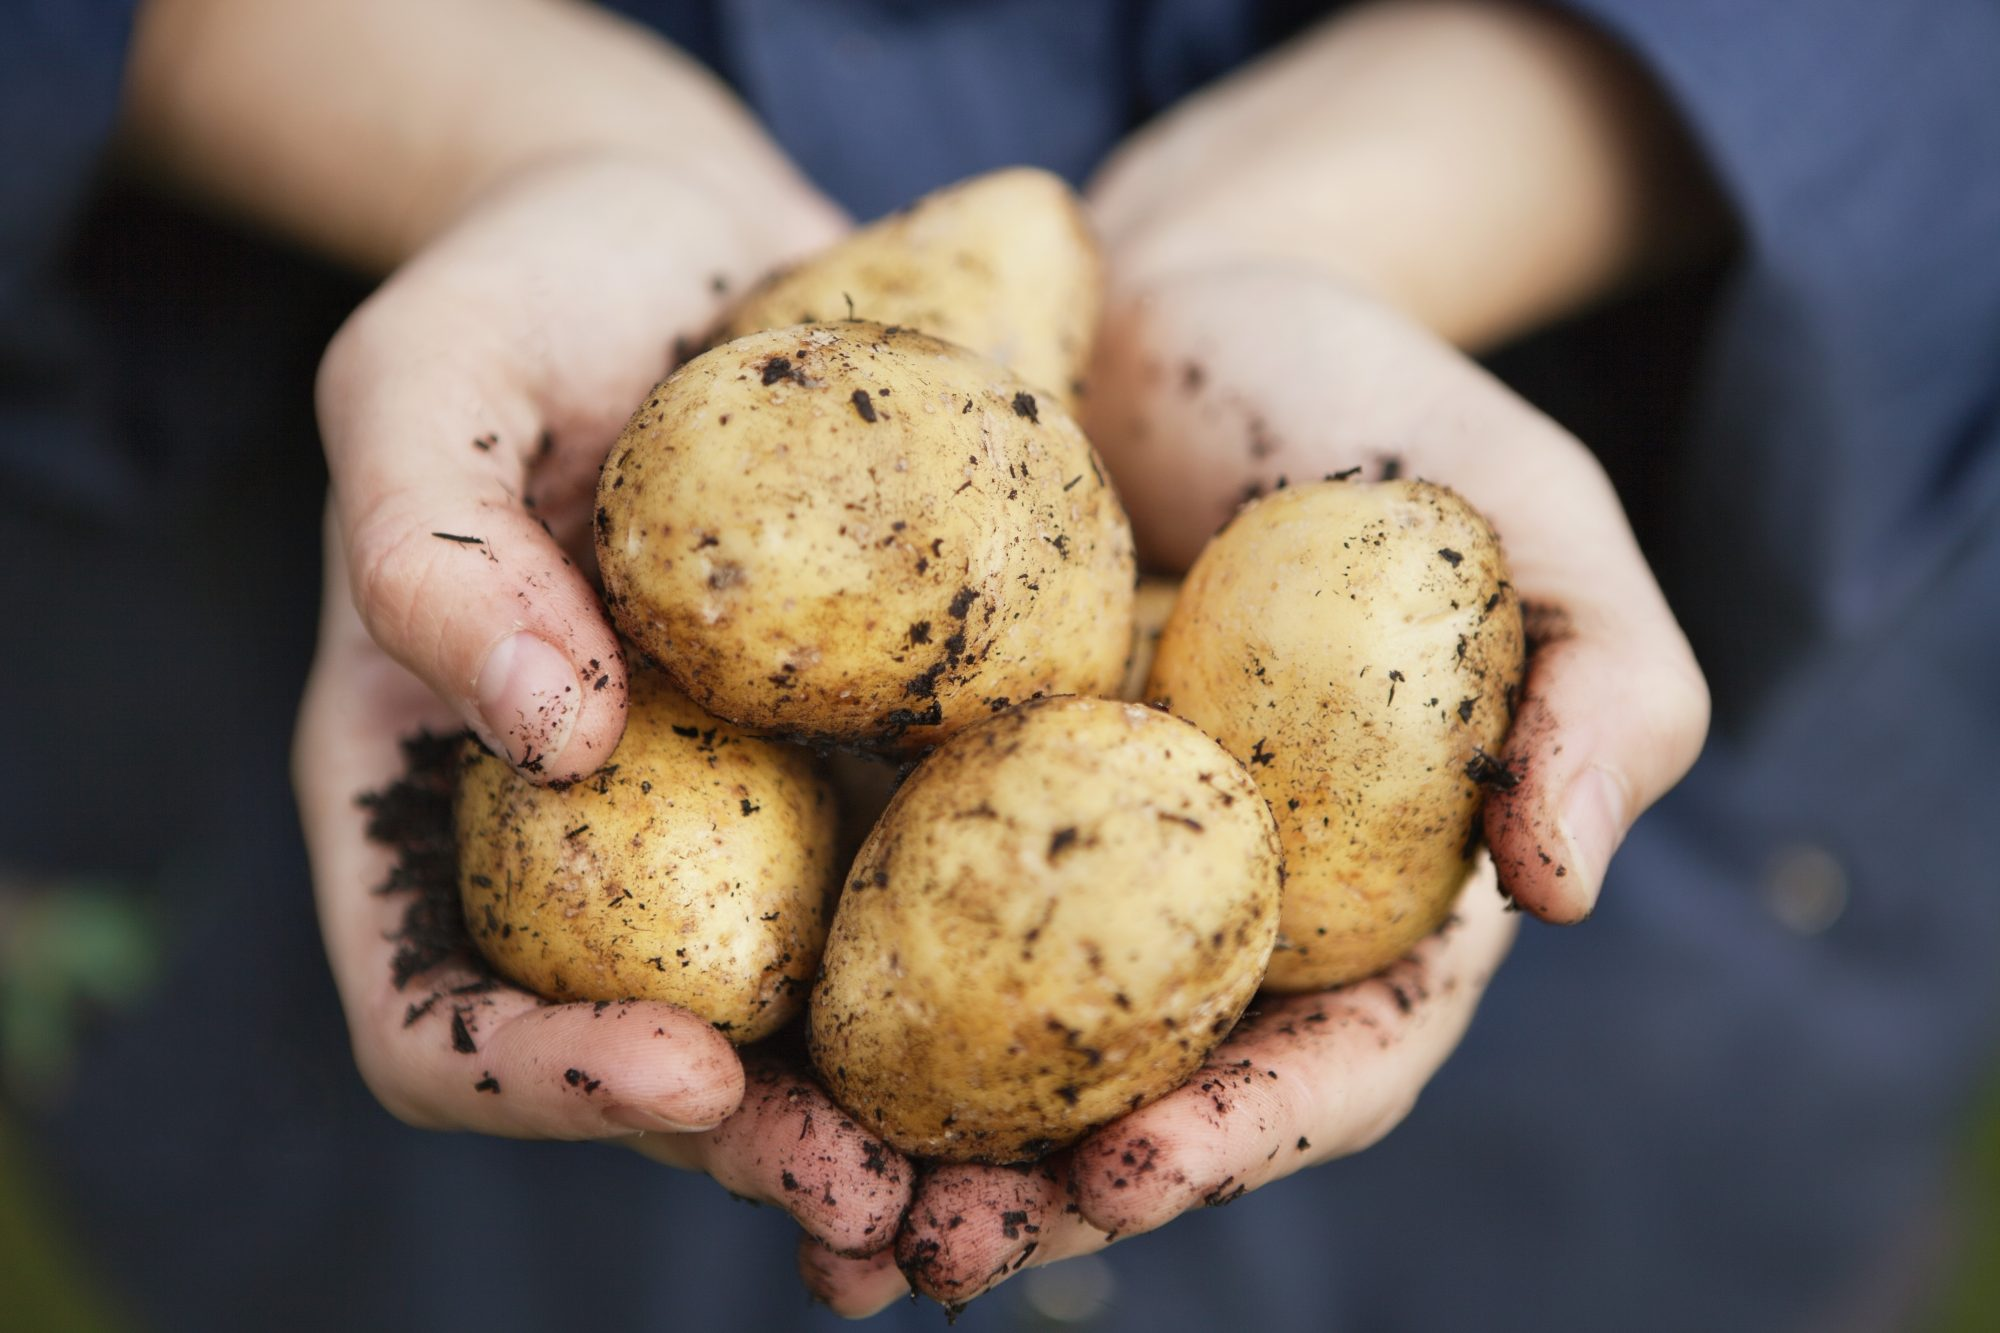 Potatoes In Hands Getty 4/16/20